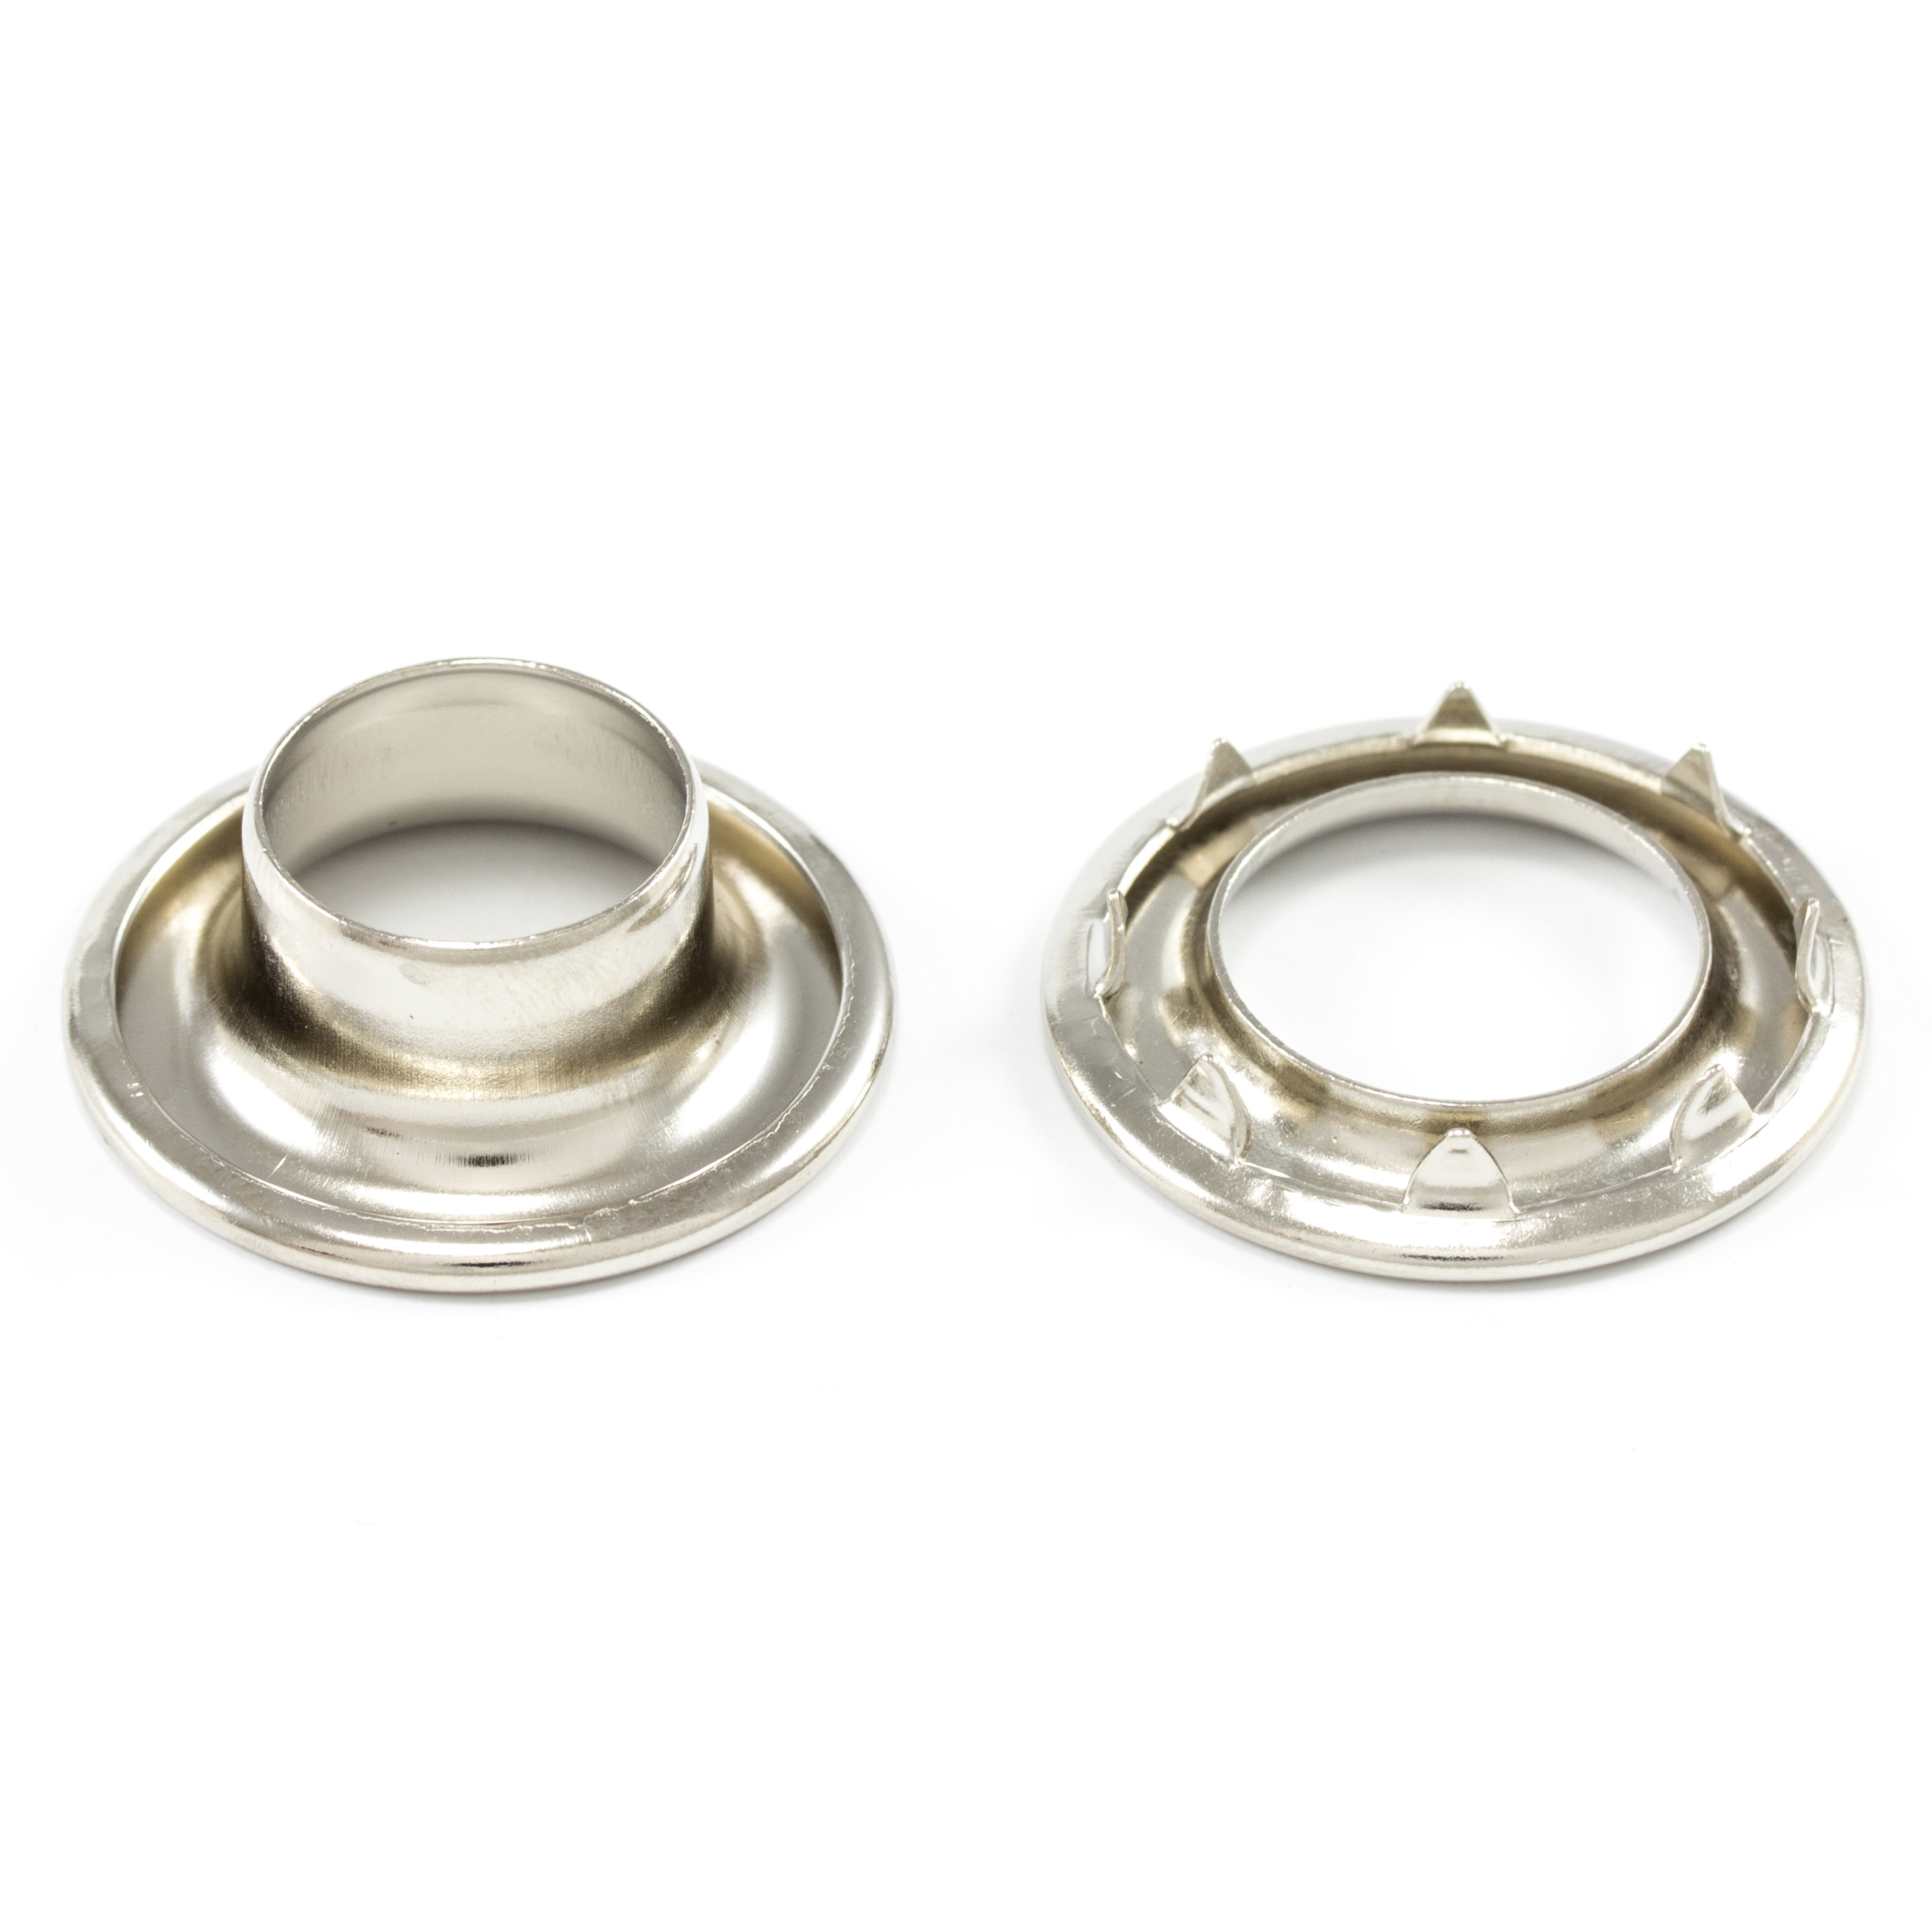 DOT Rolled Rim Grommet with Spur Washer #4 Nickel Plated Brass 9/16